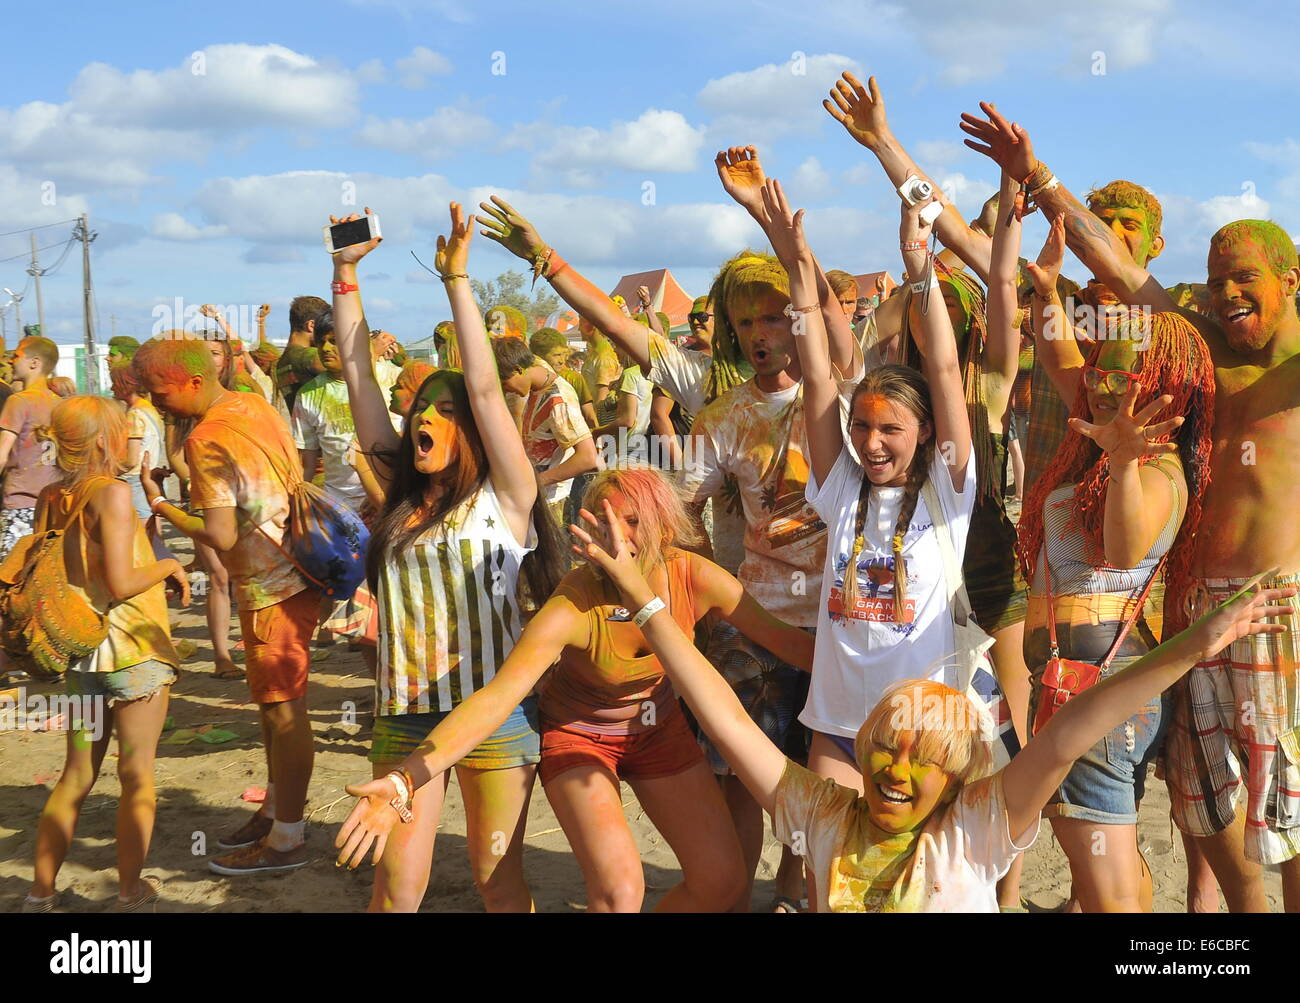 Krasnodar territory russia 20th aug 2014 young people taking krasnodar territory russia 20th aug 2014 young people taking part in the holi colorfest festival of colours at the kubana 2014 international music thecheapjerseys Images